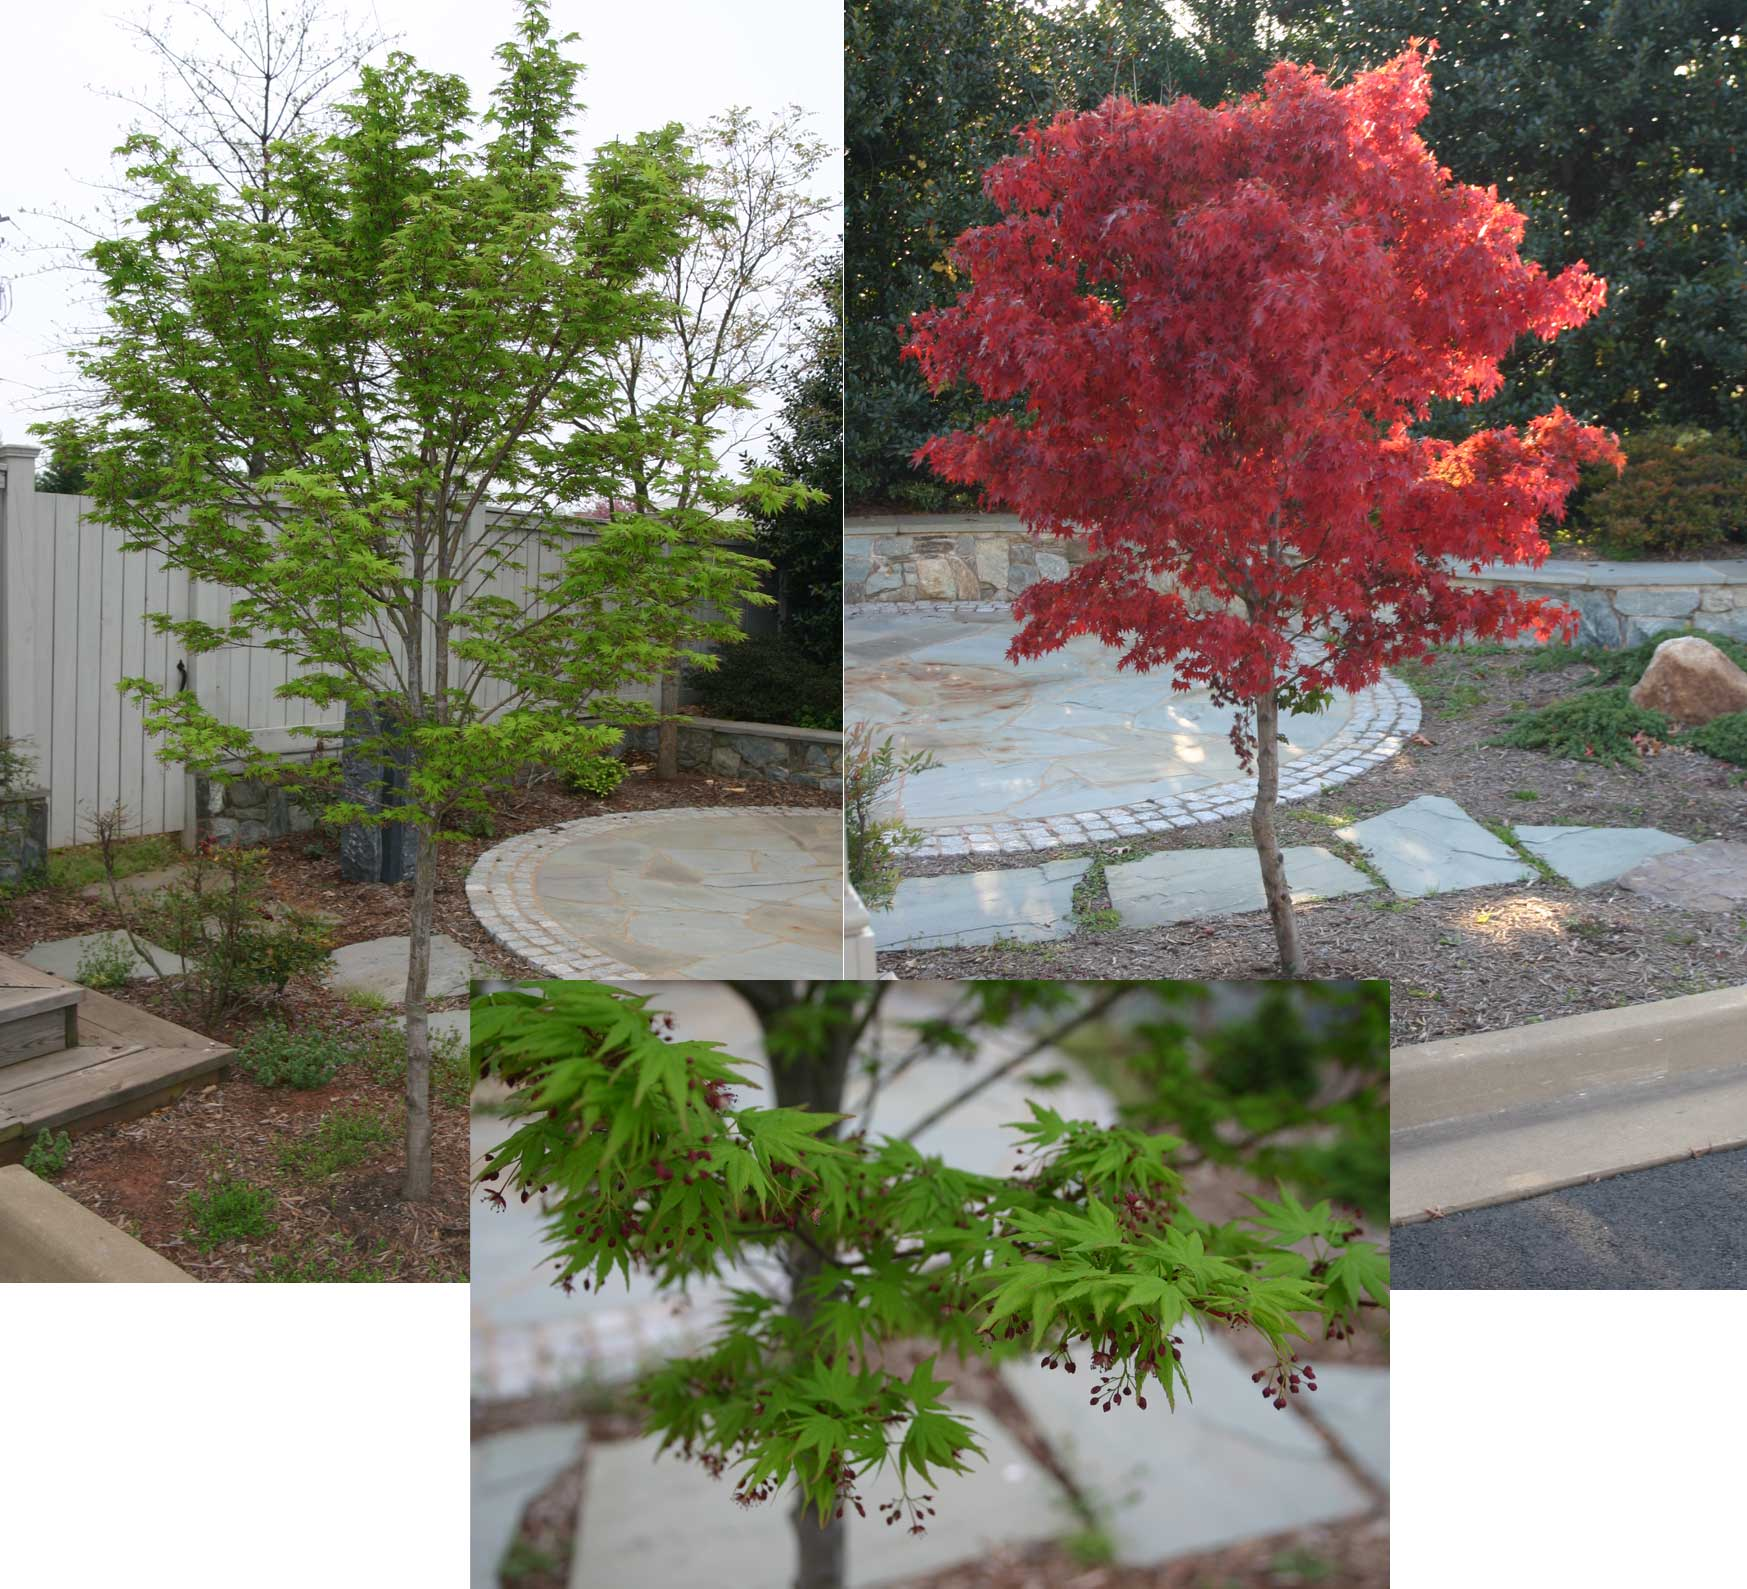 Trees For Small Spaces: Plants For Small Spaces- Part 2